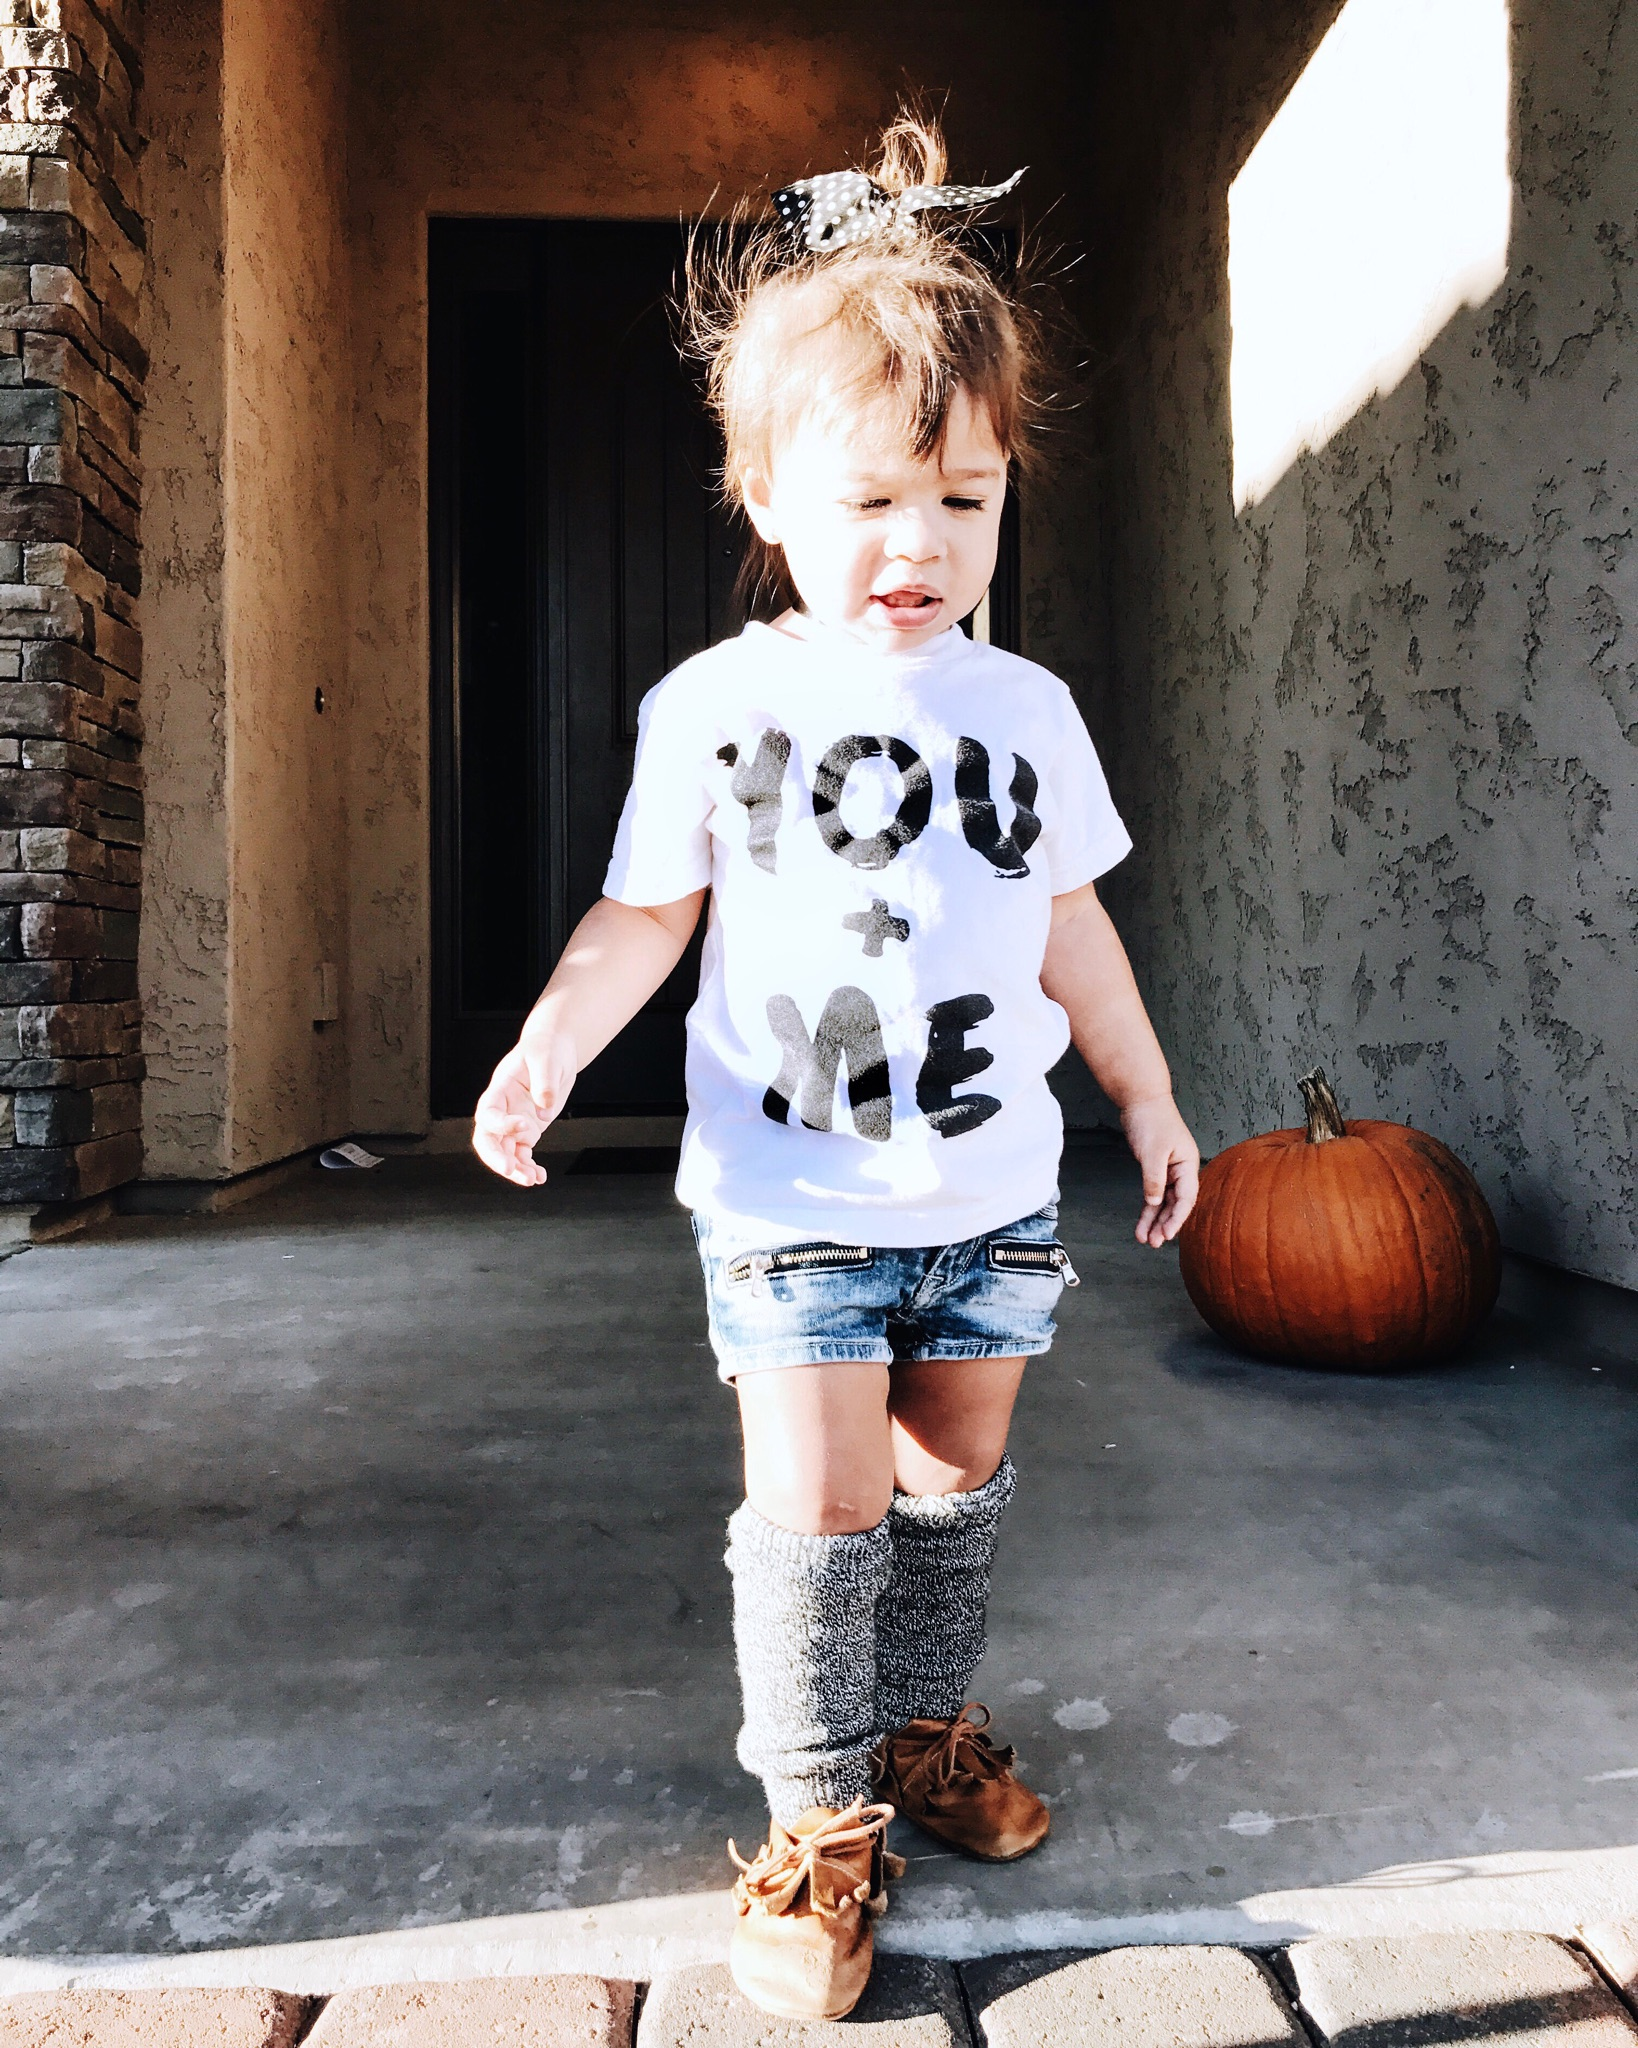 Lot801 baby and toddler you + me monochrome graphic tee